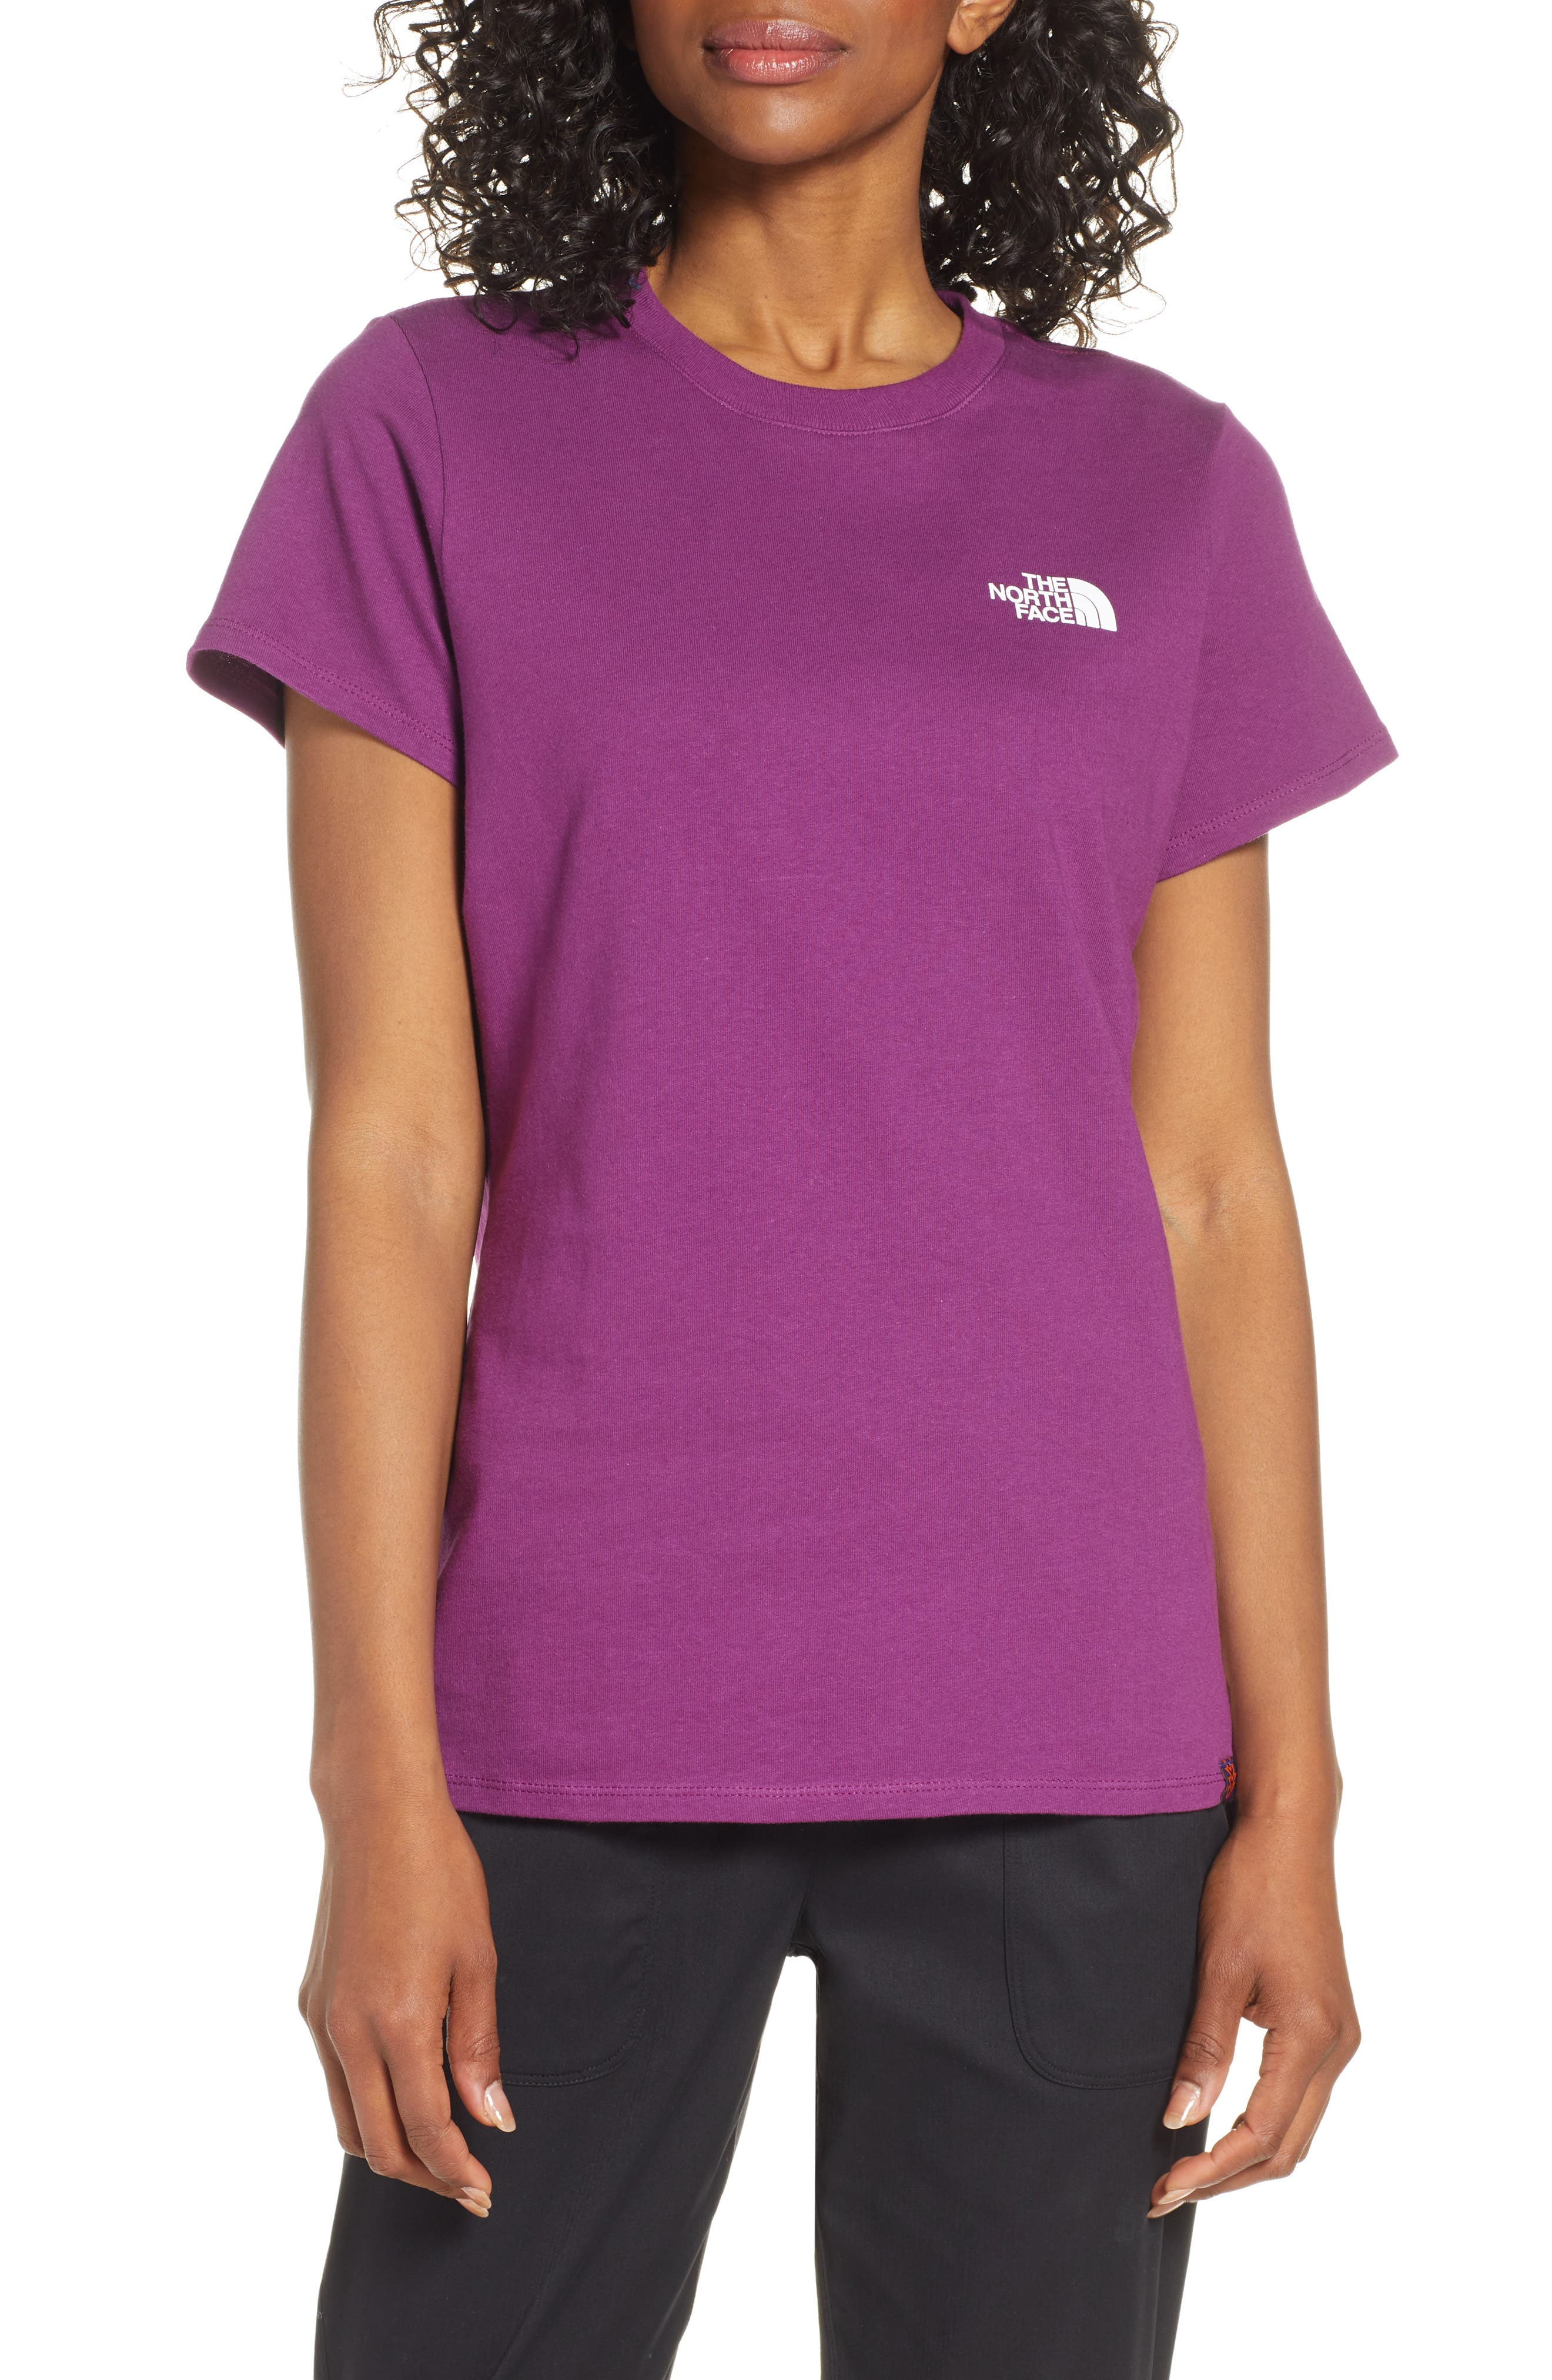 THE NORTH FACE, Red Box Tee, Main thumbnail 1, color, Phlox Purple/Aztec Blue